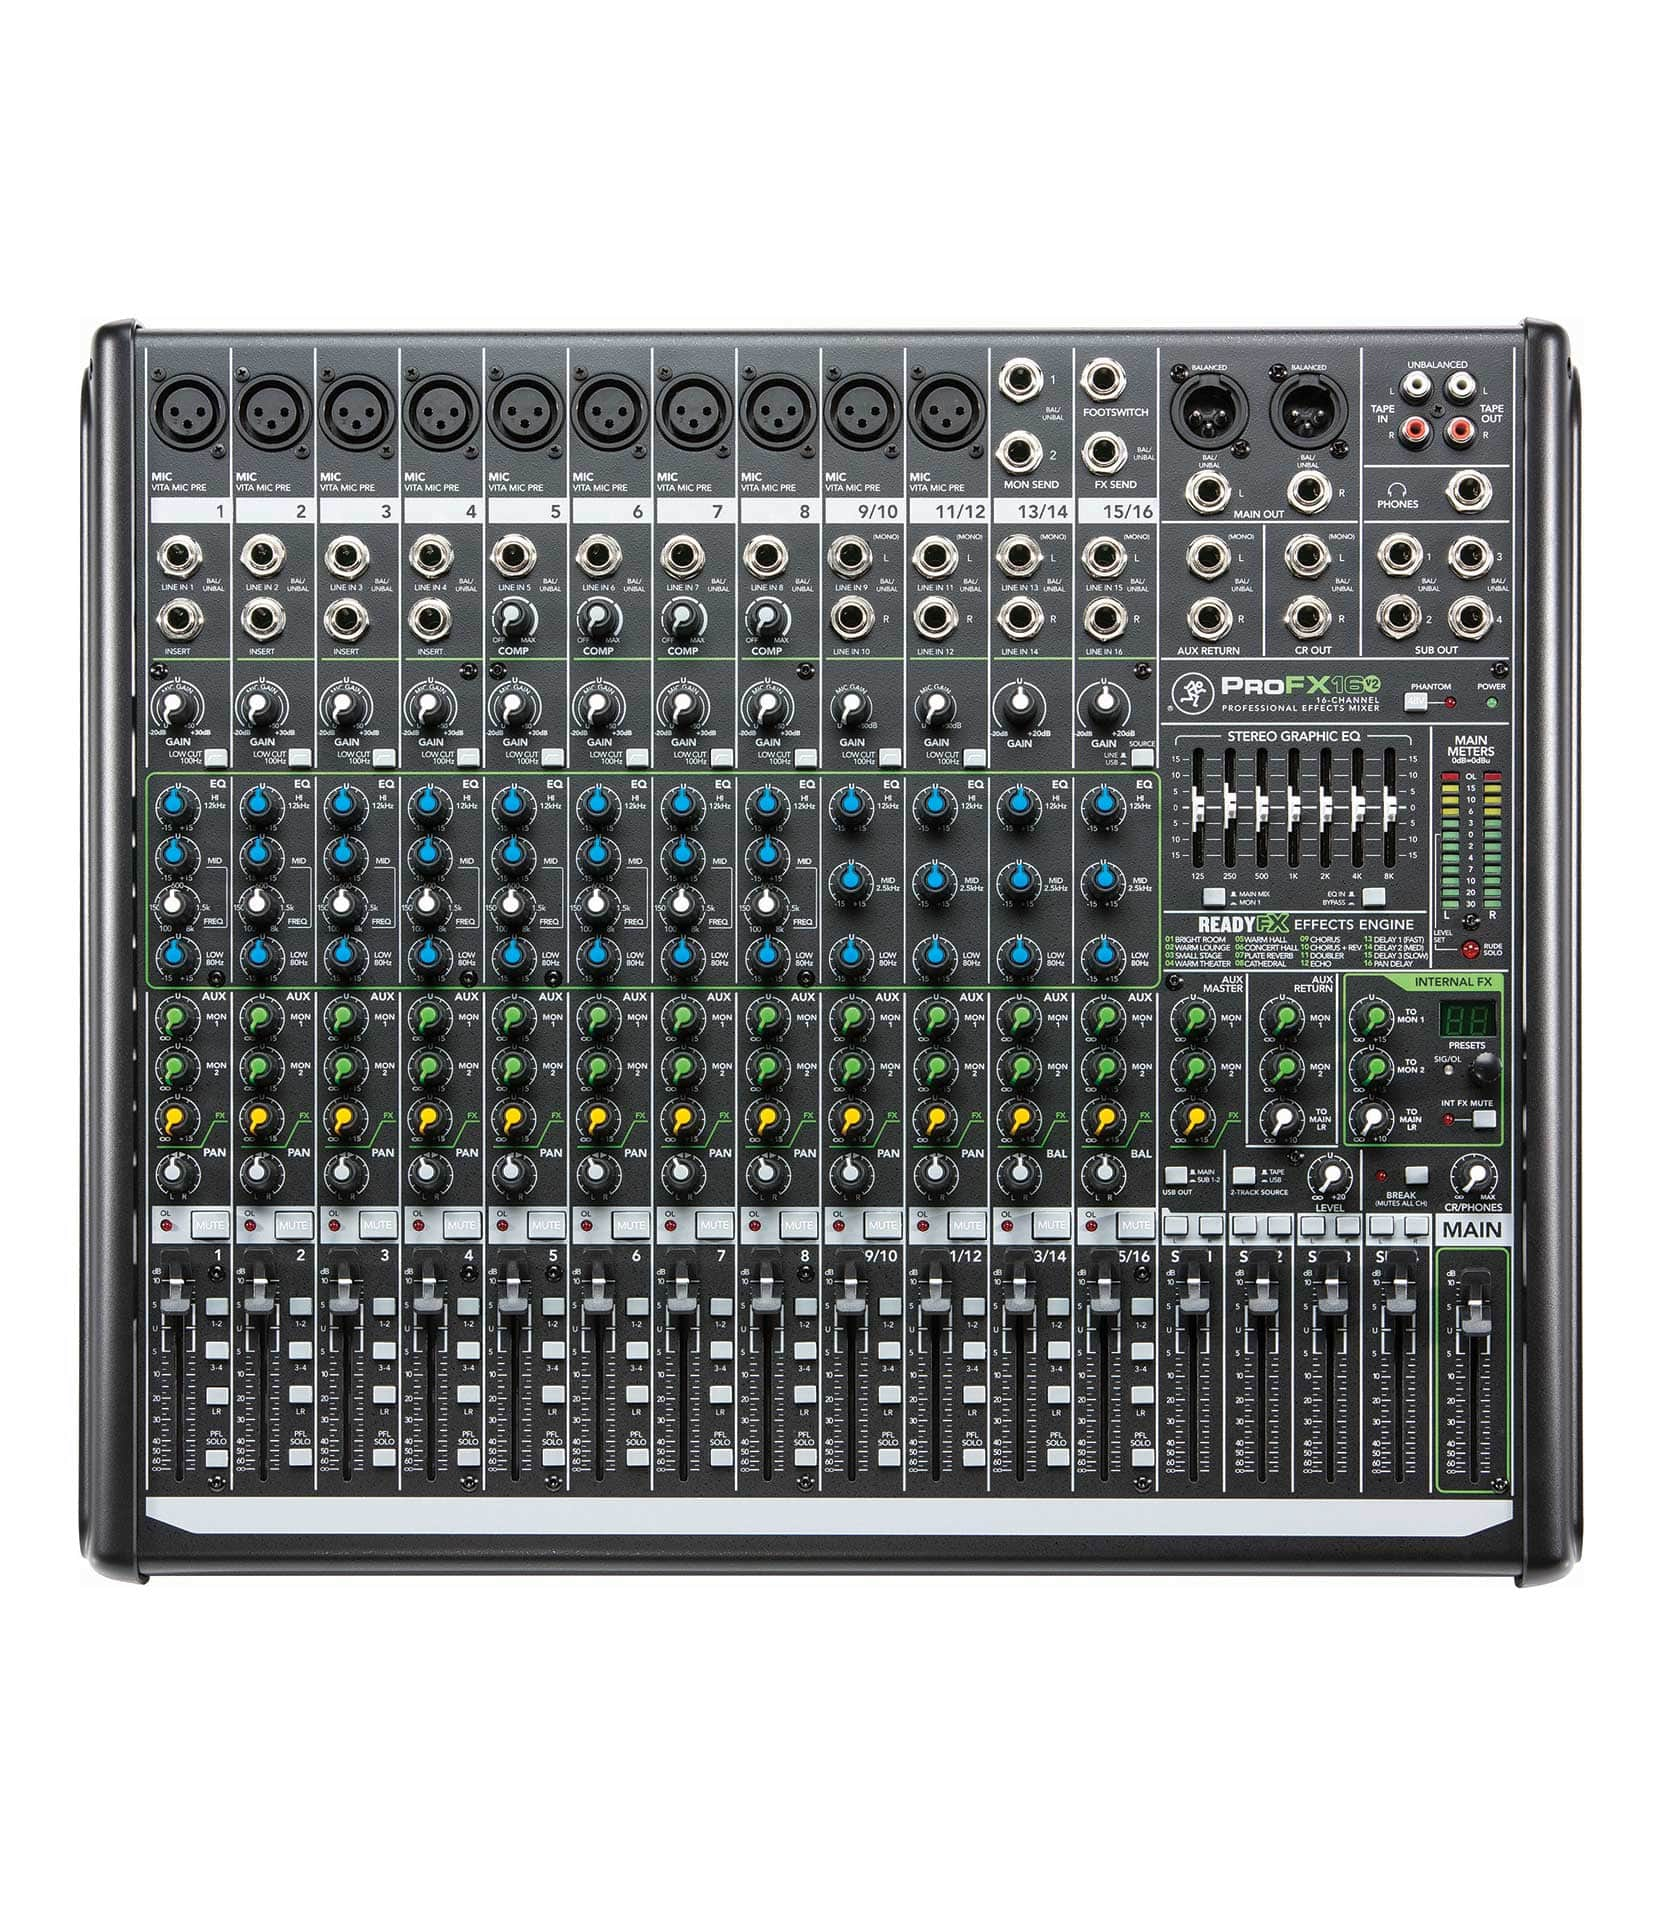 ProFX16v2 UK 16 channel 4 Bus Effects Mixer